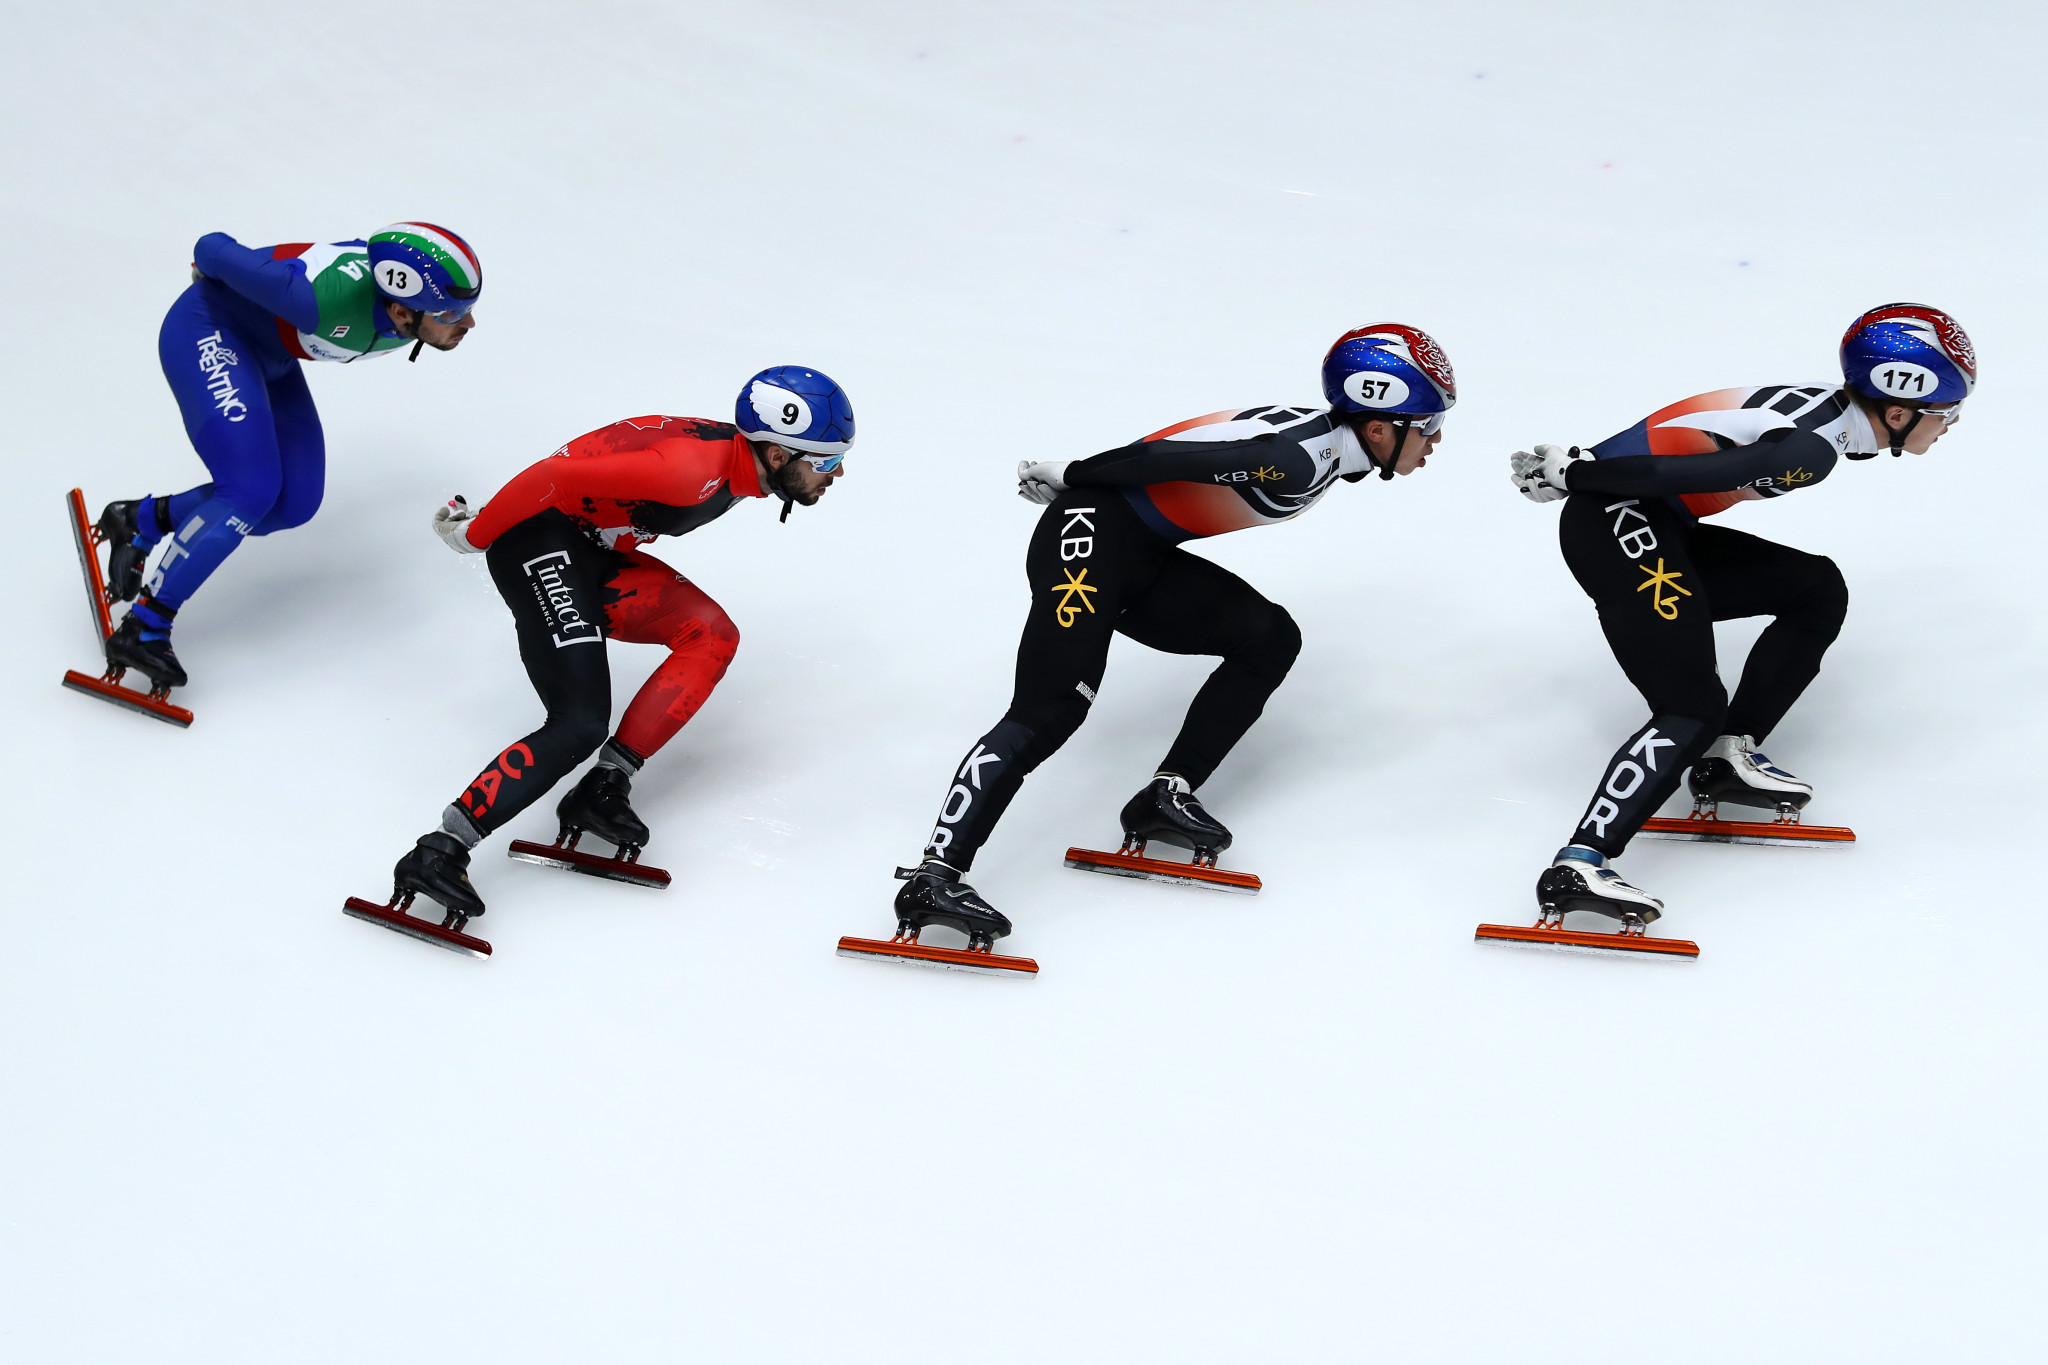 ISU confirms speed skating format for Beijing 2022 test event